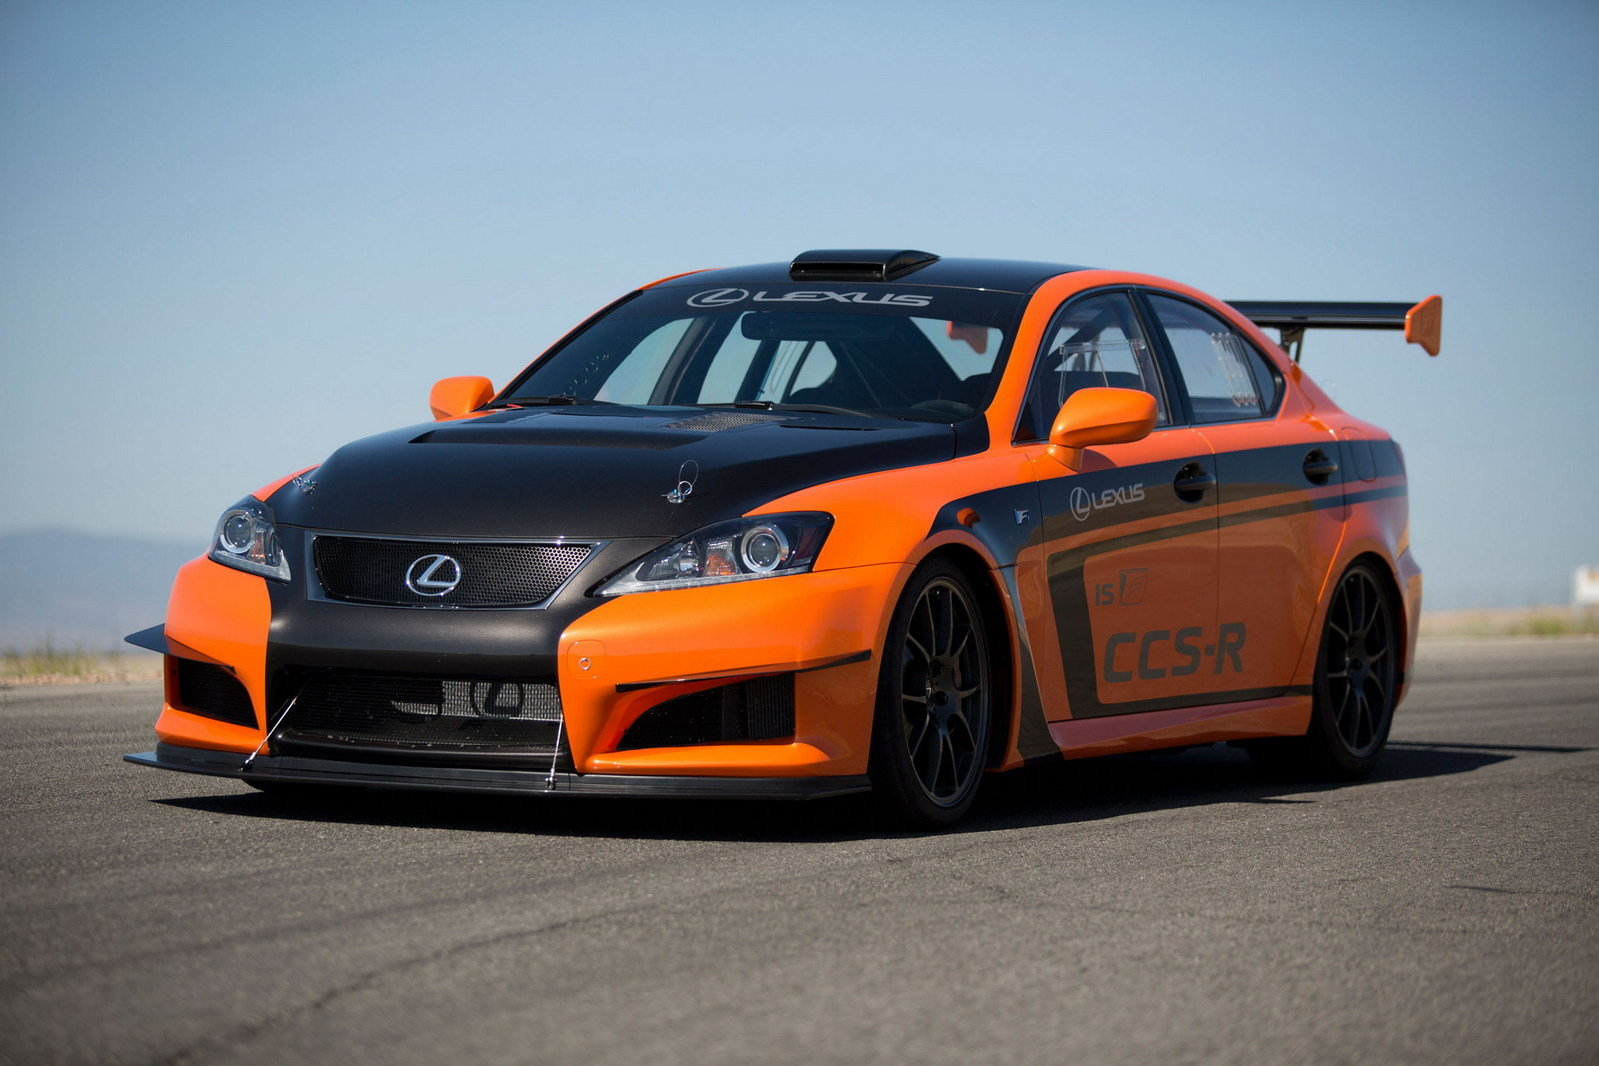 2012 Lexus Is F Ccs R Race Car Review Top Speed